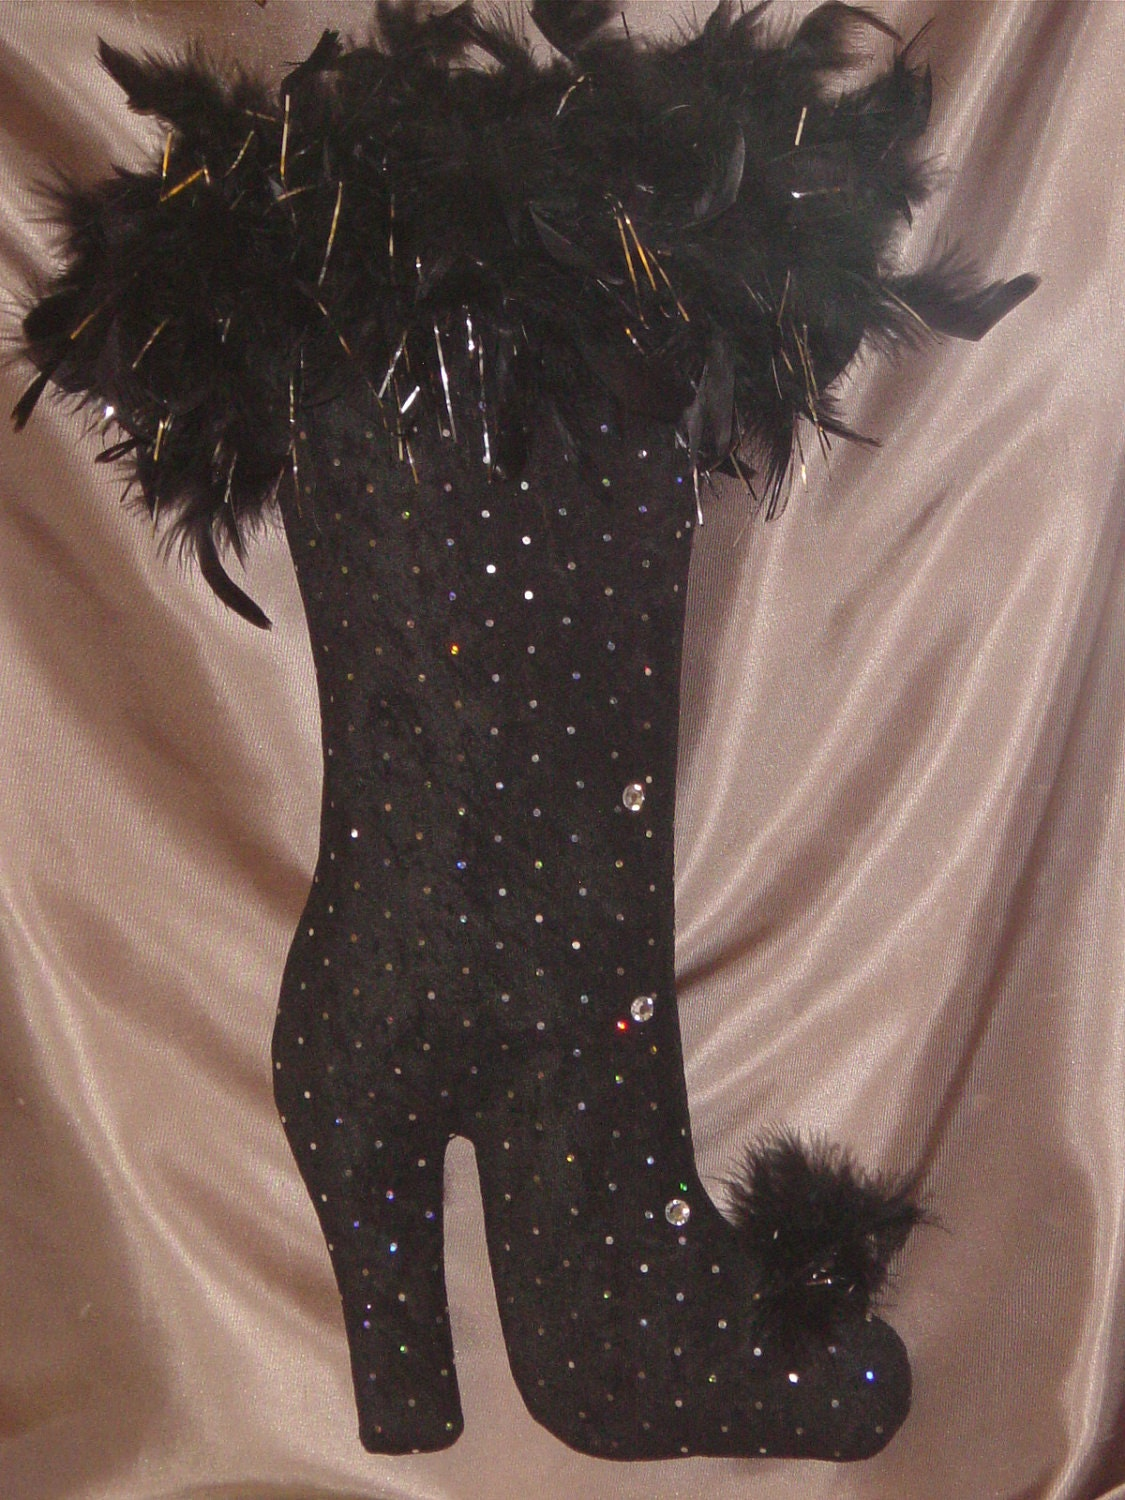 Designer High Heel Christmas Stocking In Black By